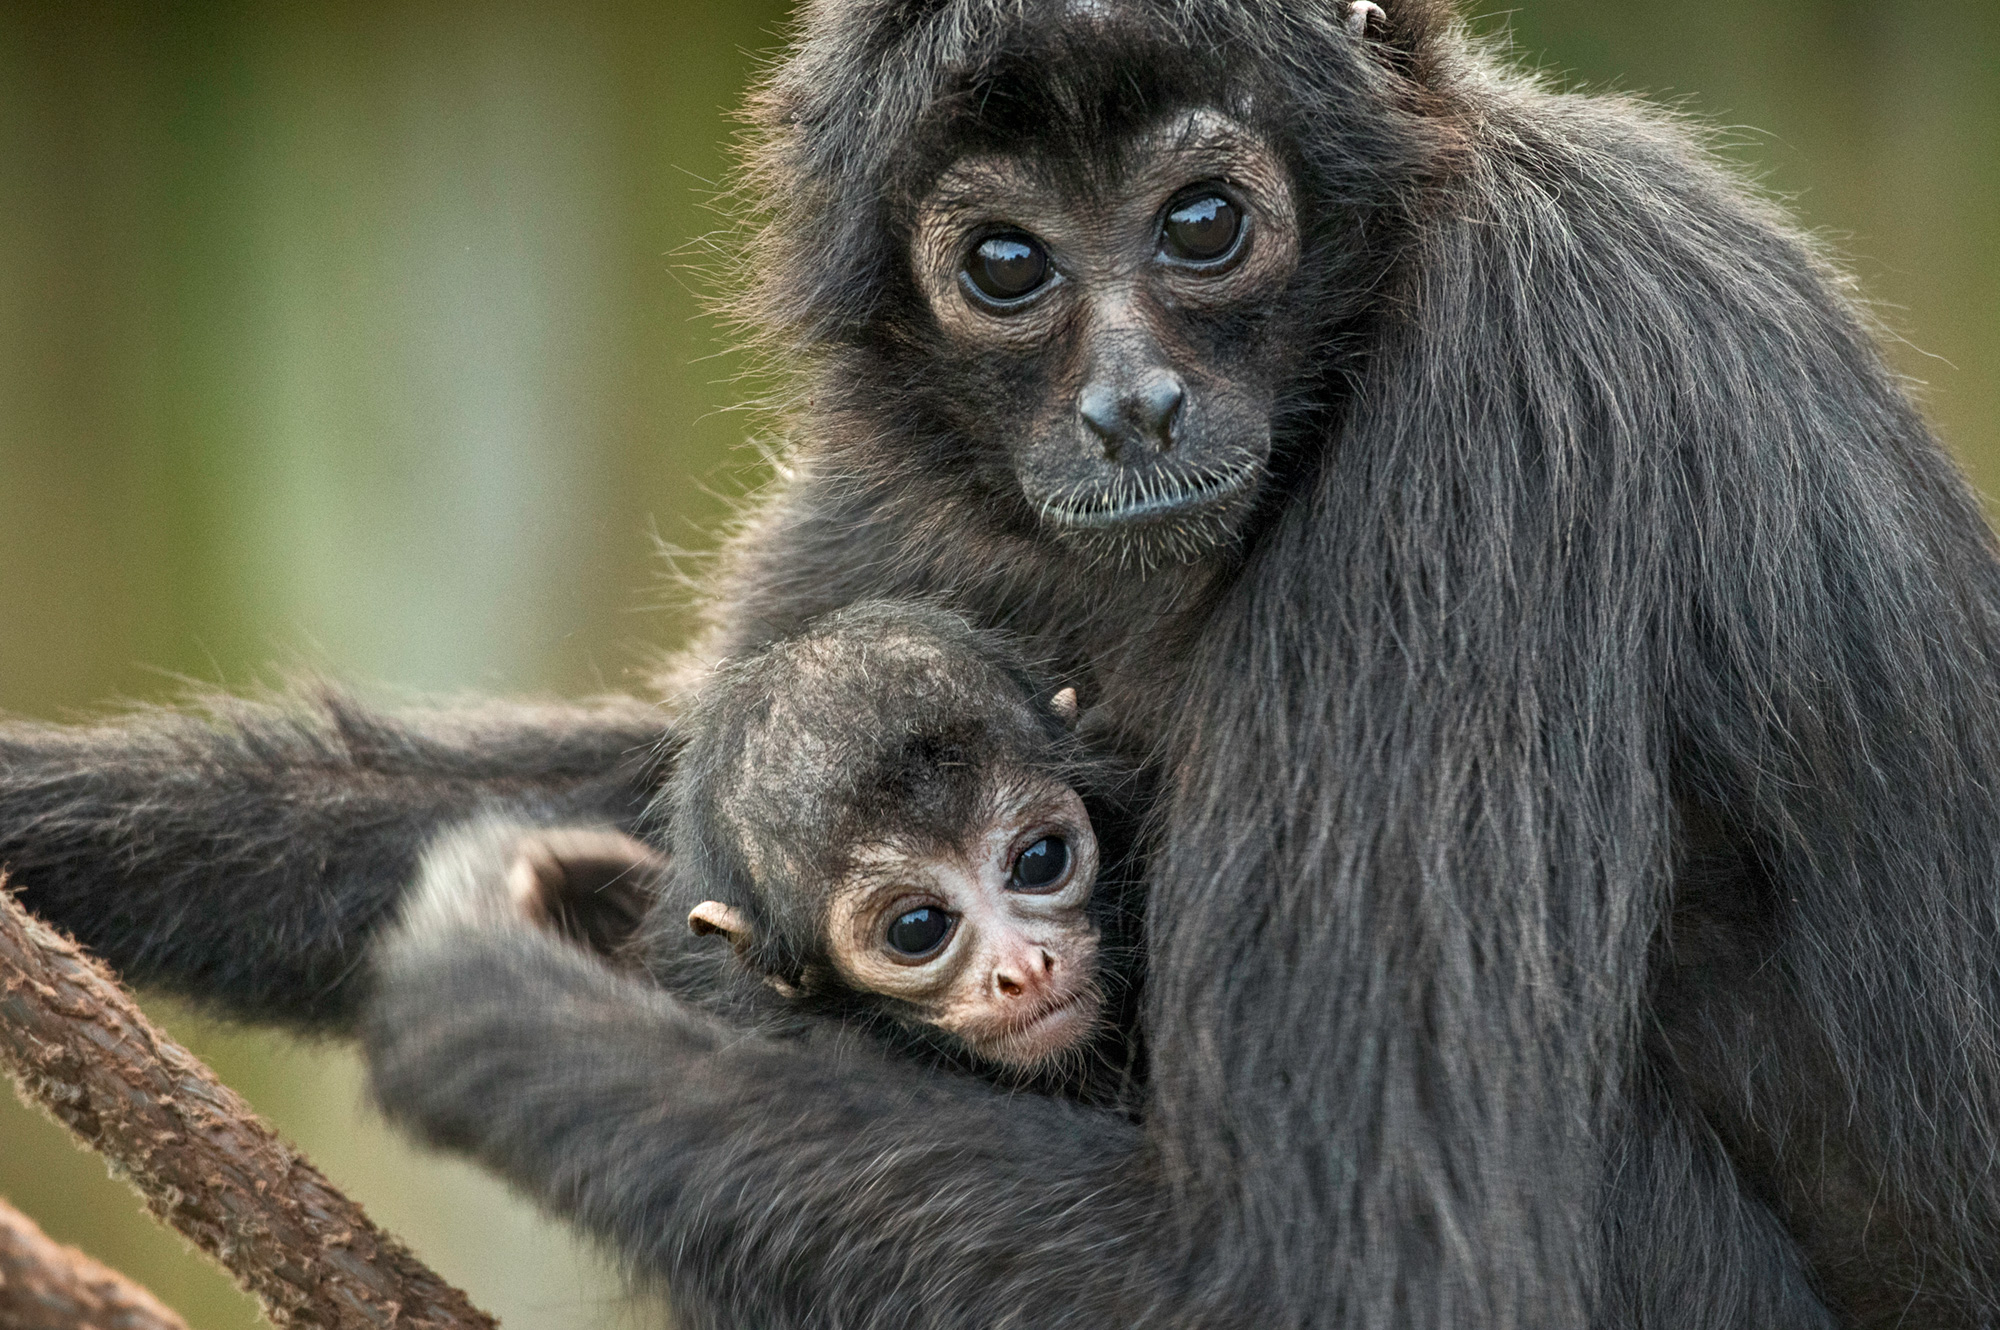 Columbian spider monkey